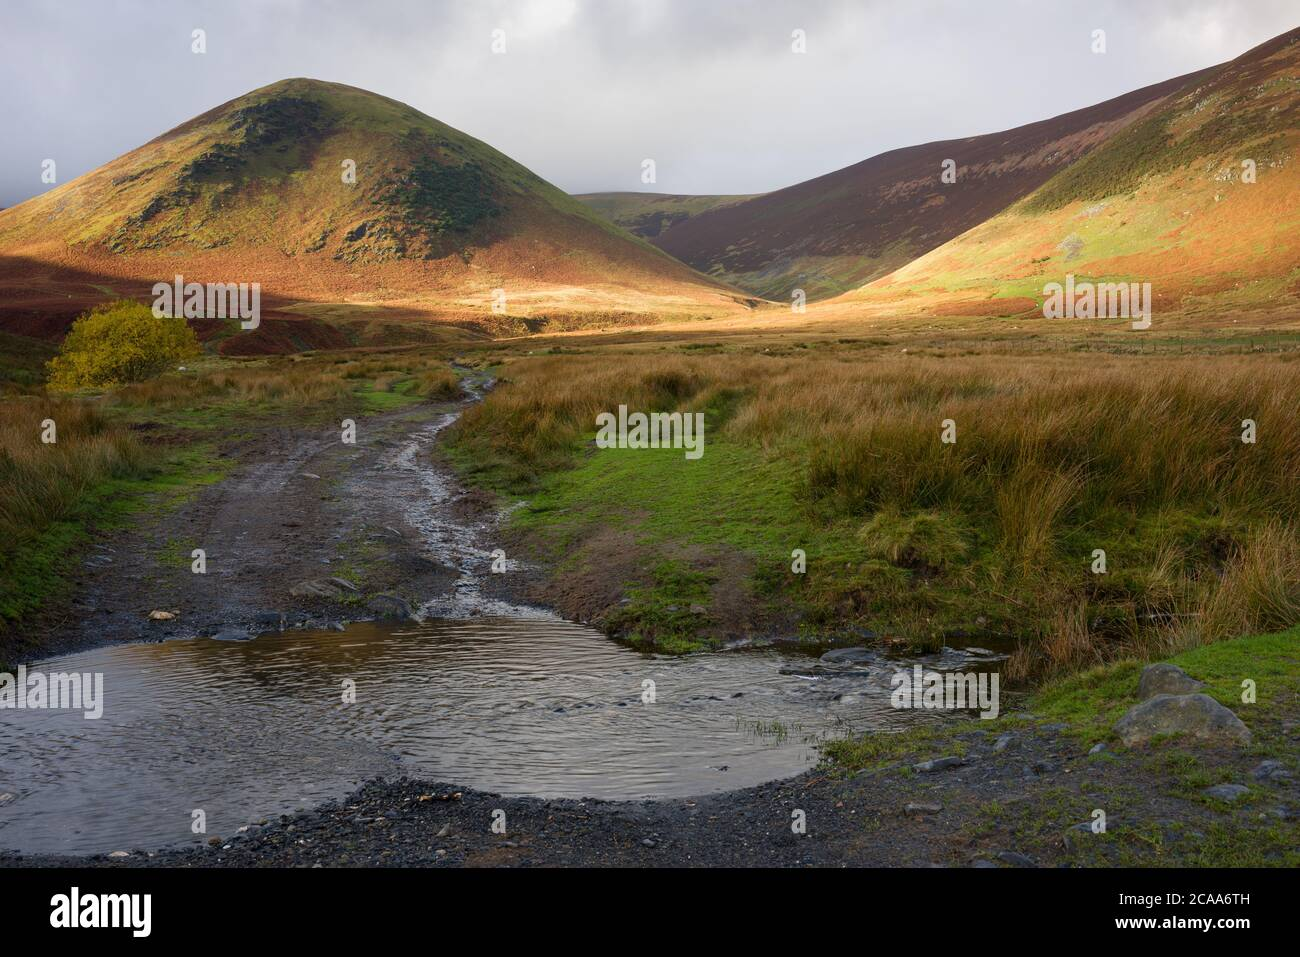 The Tongue and Bowscale Fell at Mungrisdale in the Lake District National Park, Cumbria, England. Stock Photo